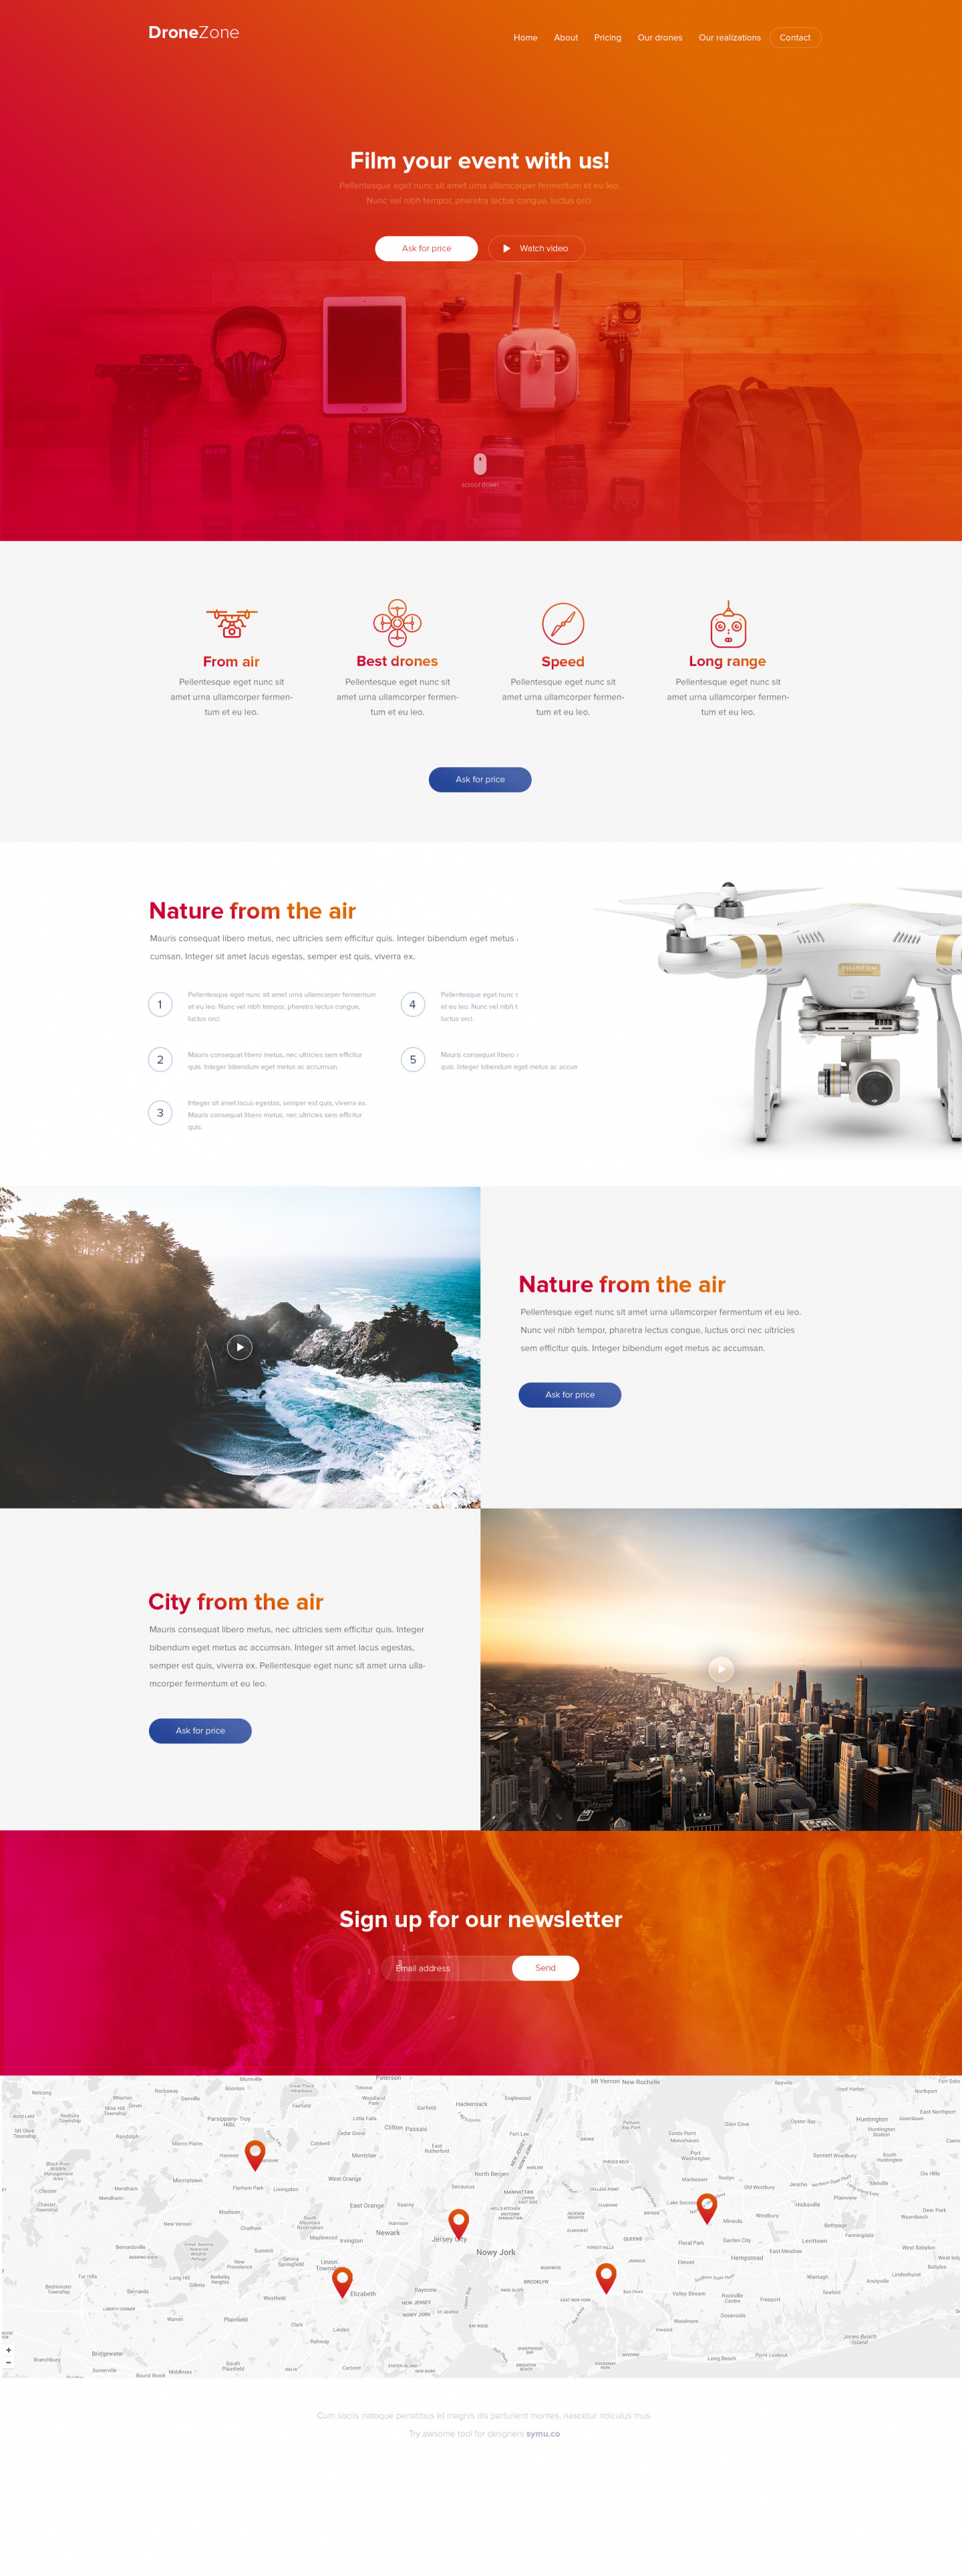 Drone zone - website template